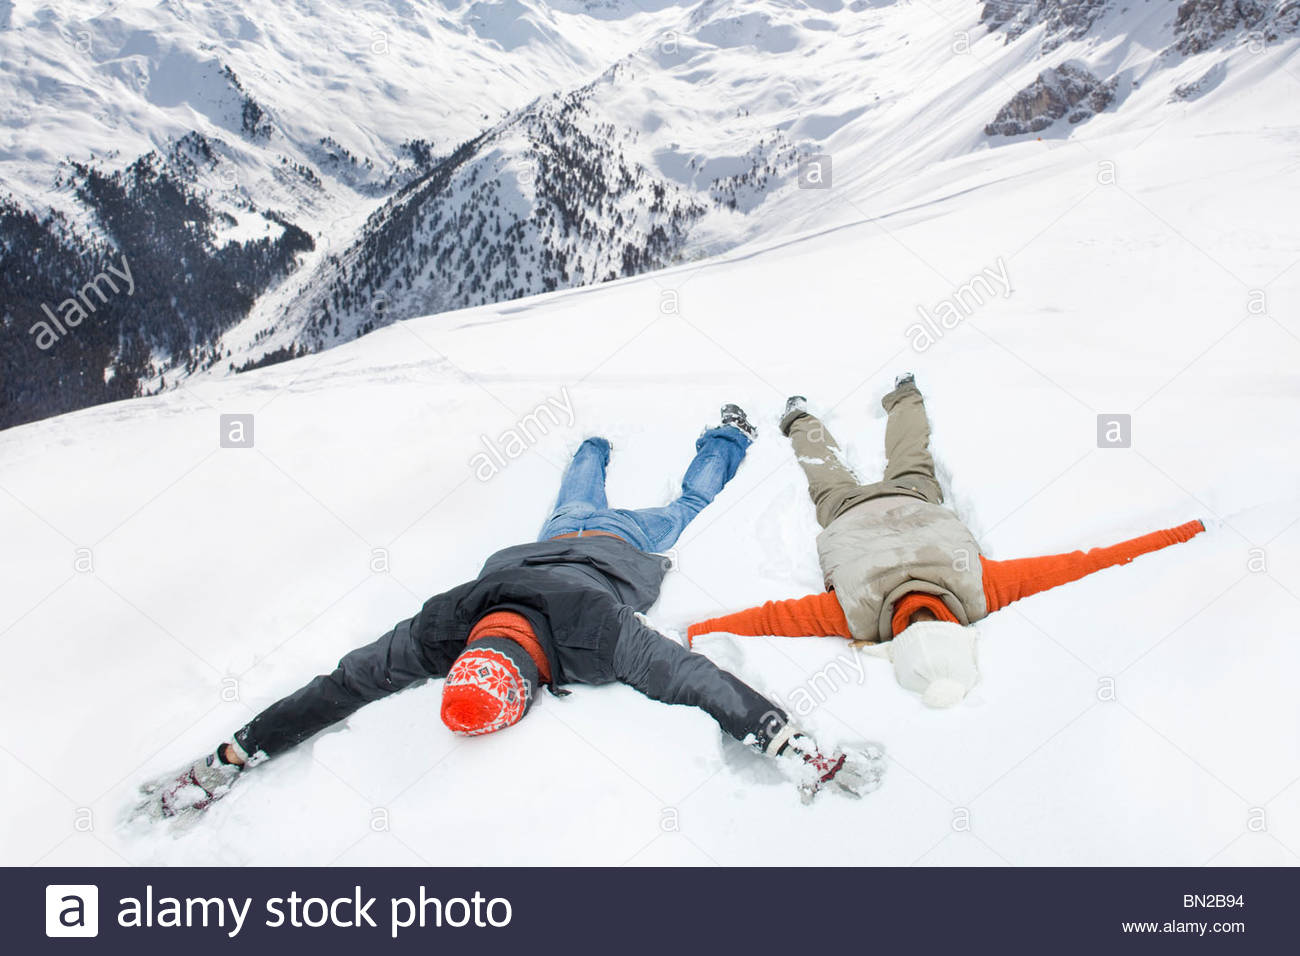 Couple making snow angels on mountain - Stock Image